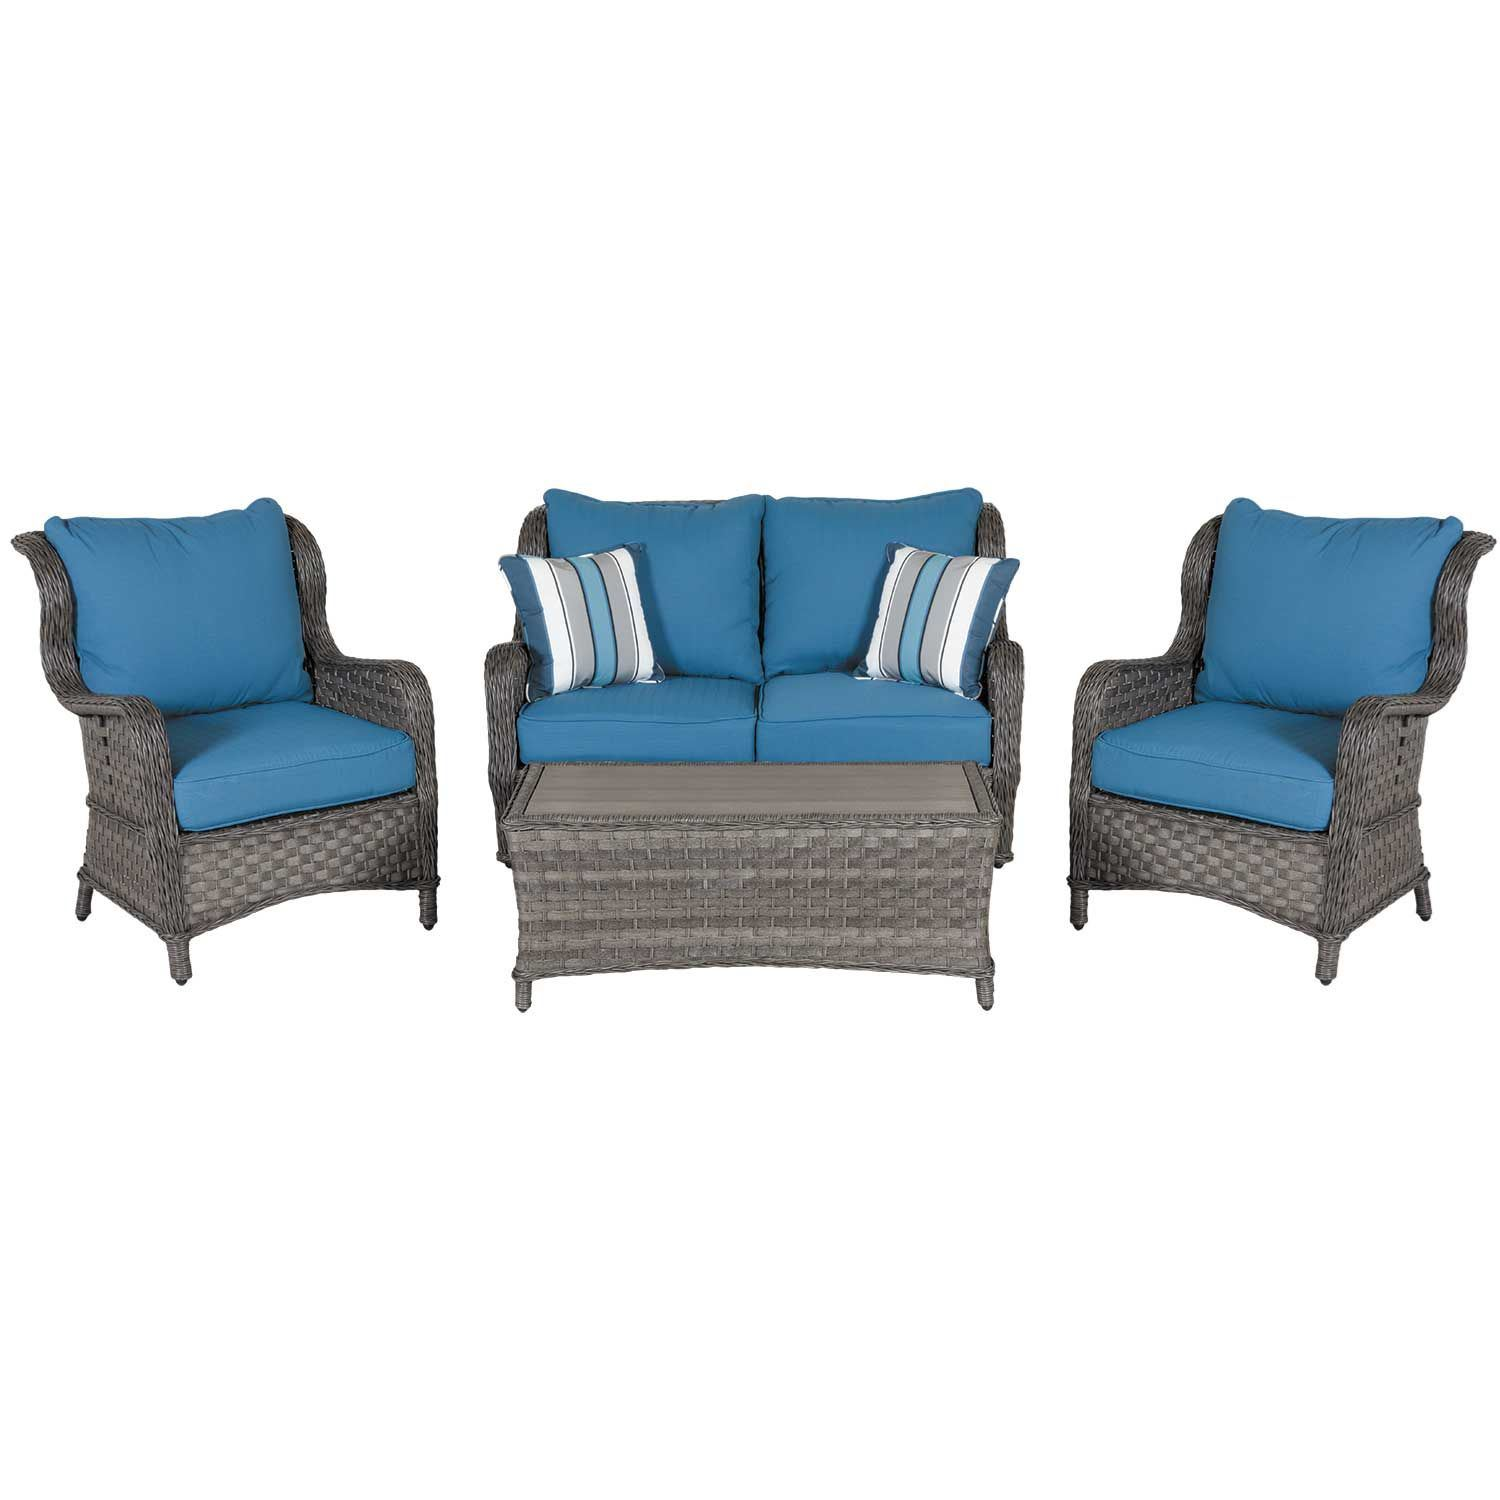 Abbot S Court 4 Piece Patio Set P360 4pc Ashley Furniture Afw